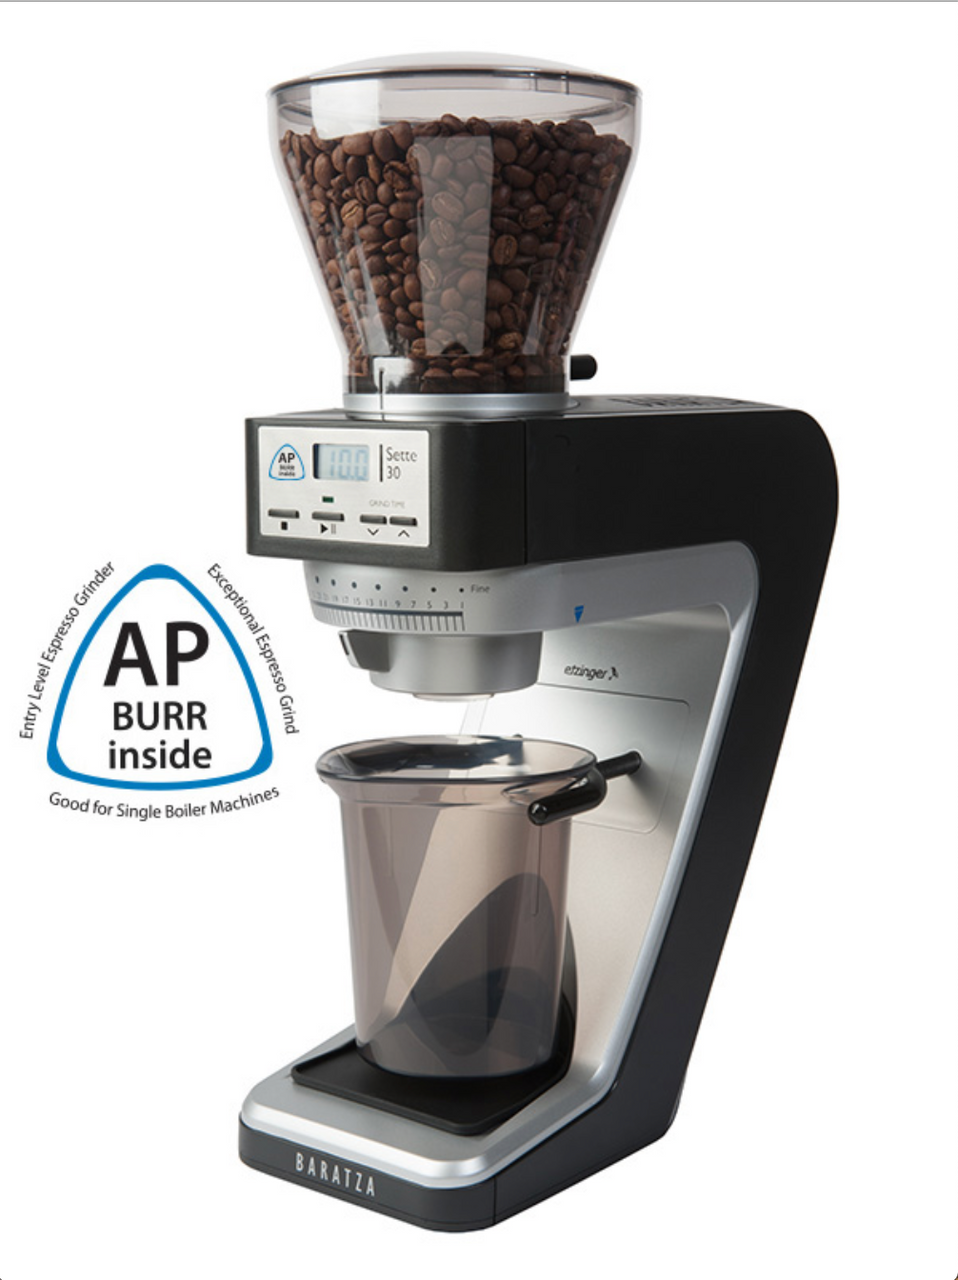 Sette 30 AP | Conical Burr Coffee Grinder